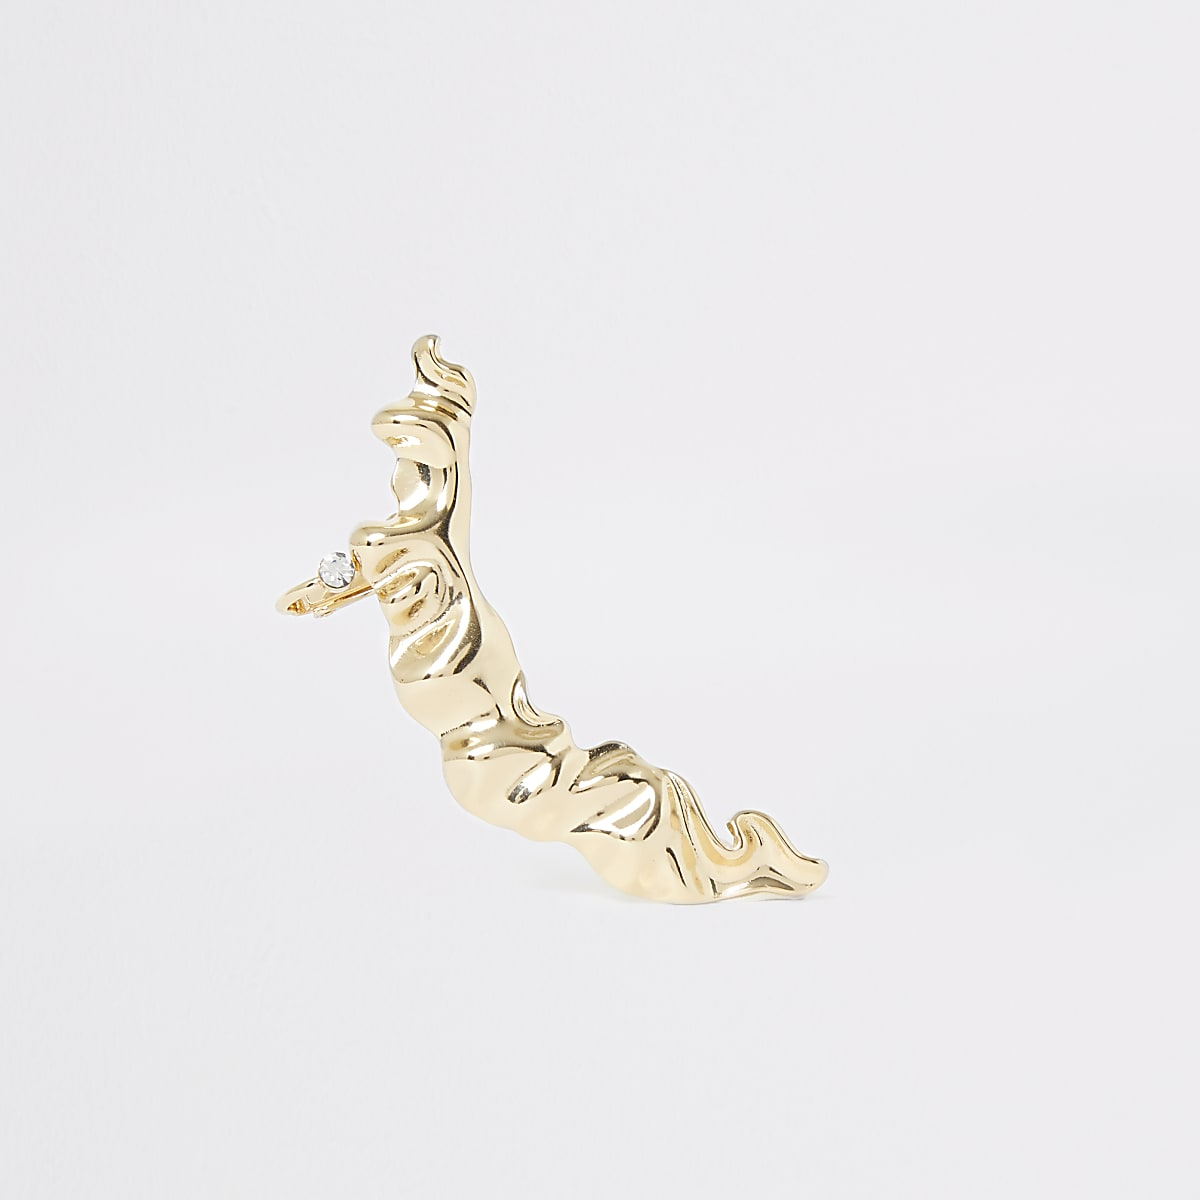 Gold color battered earring cuff